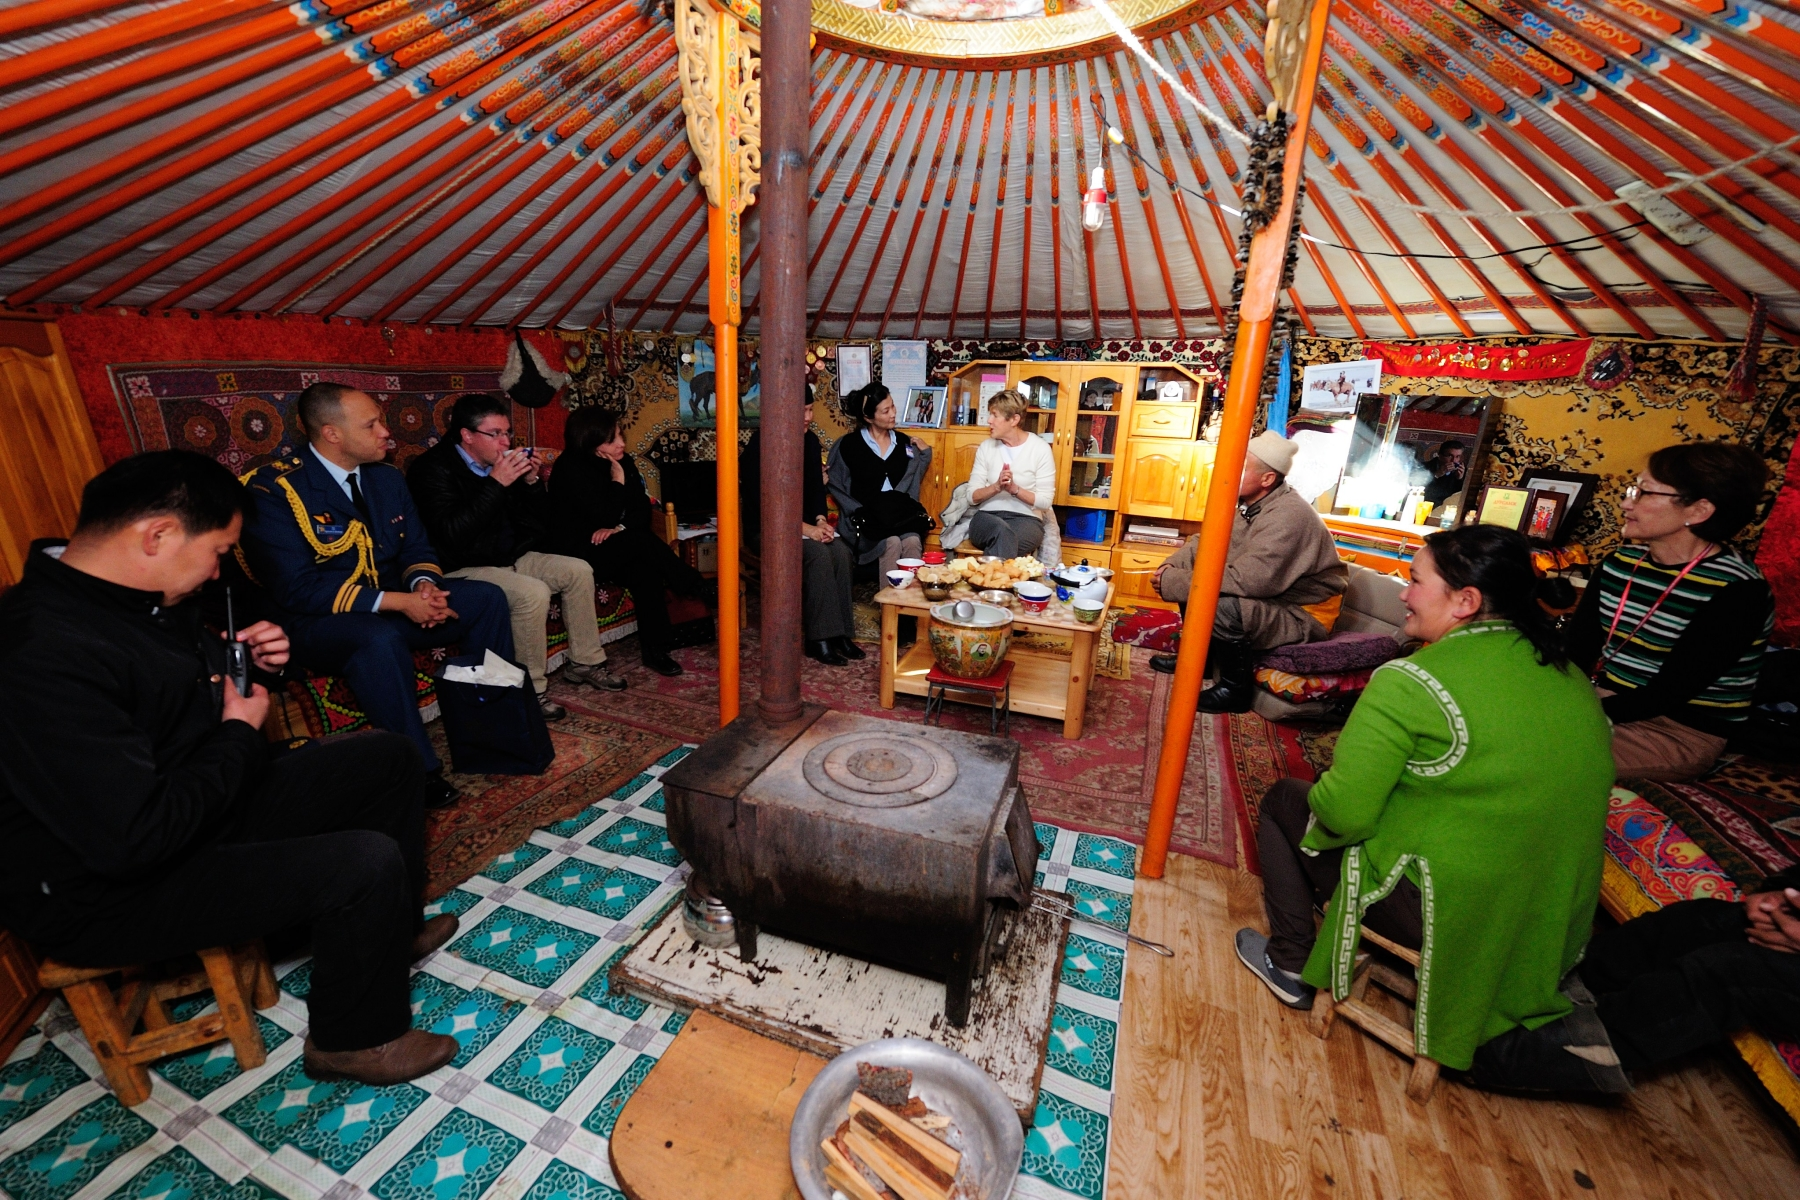 Inside the herder family's winter station, Her Excellency experienced their culture.